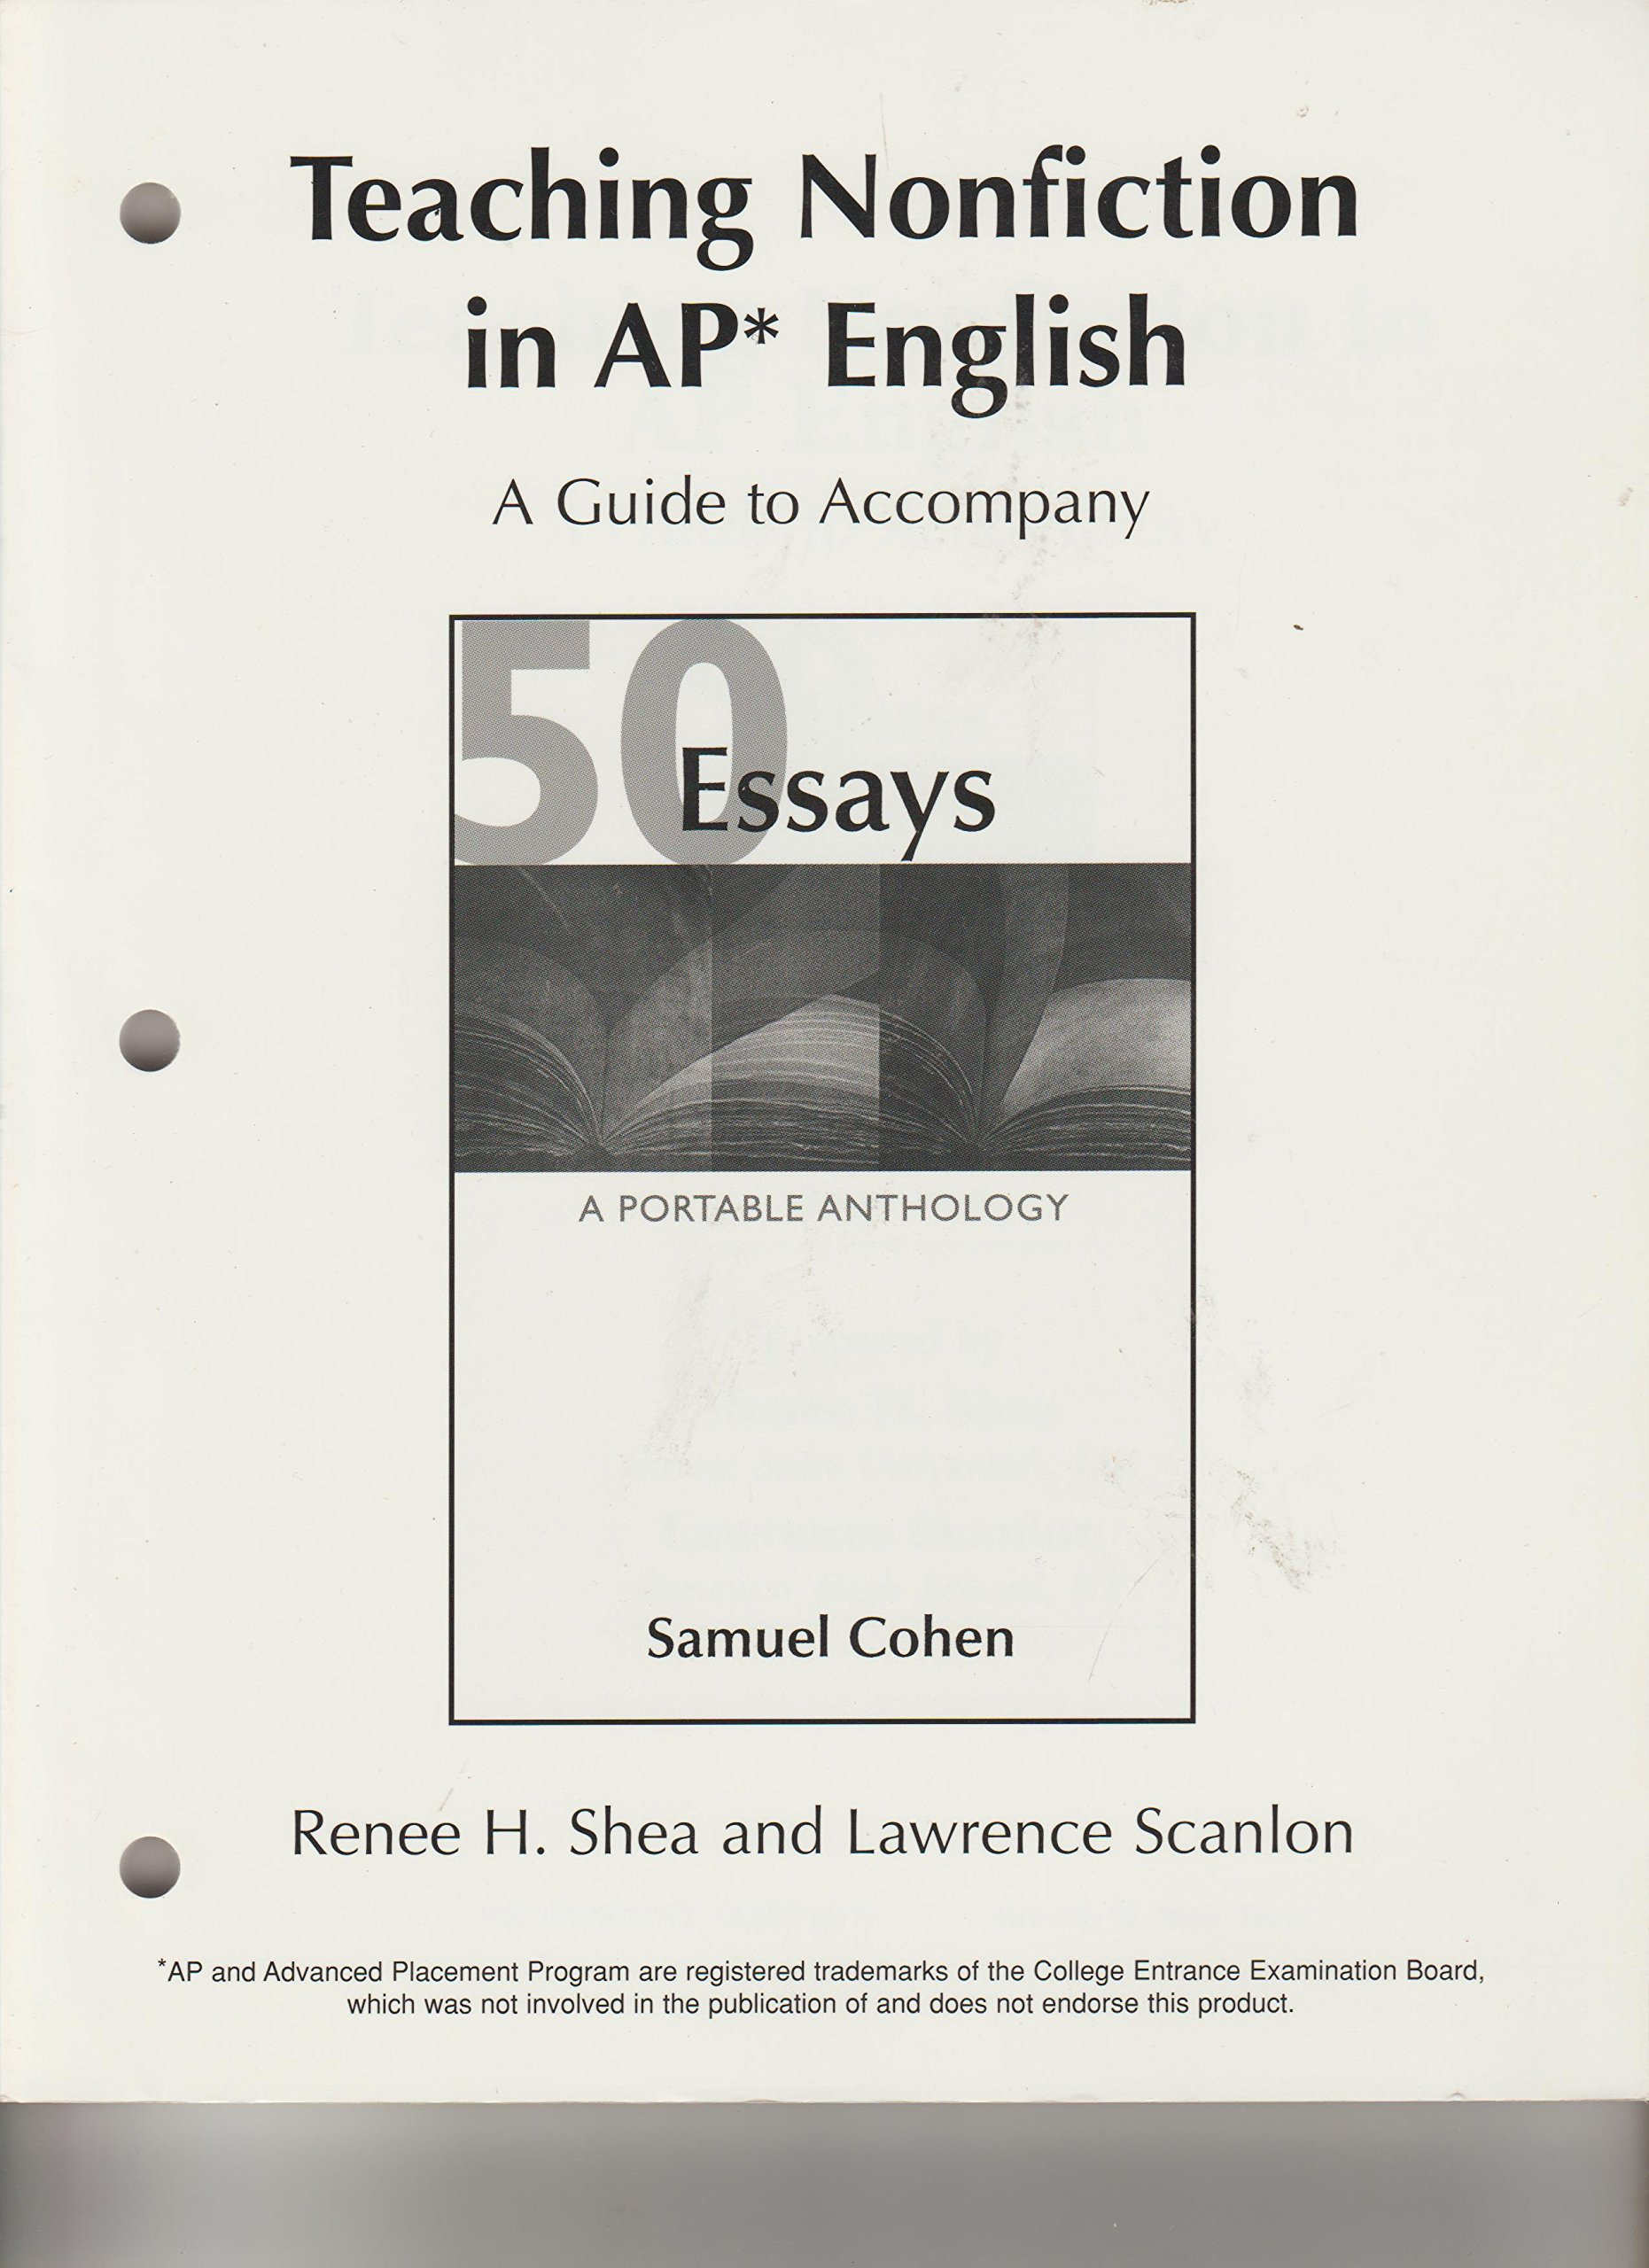 An Essay On Science Teaching Nonfiction In Ap English A Guide To Accompany  Essays From  Samuel Cohen Renee H Shea Lawrence Scanlon Samuel Cohen    How To Write A Good Proposal Essay also Secondary School English Essay Teaching Nonfiction In Ap English A Guide To Accompany  Essays  Example Of A Essay Paper